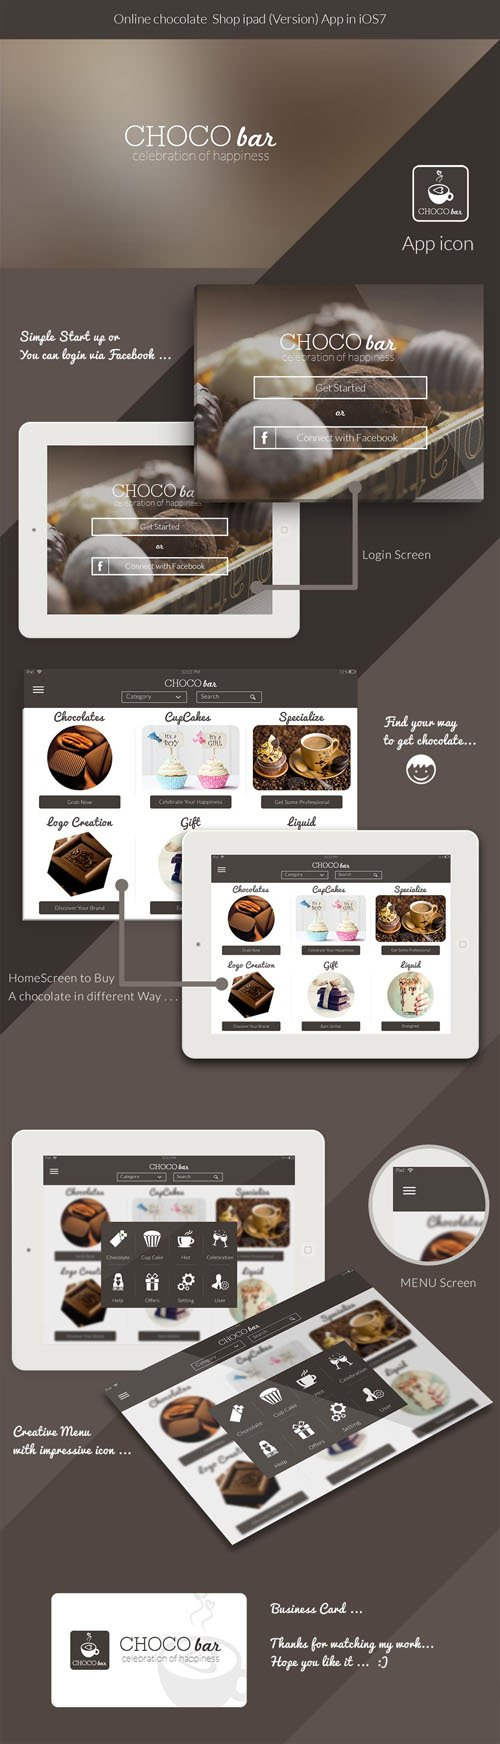 Bakery / CHOCO bar - iPad App UI Kit PSD Template